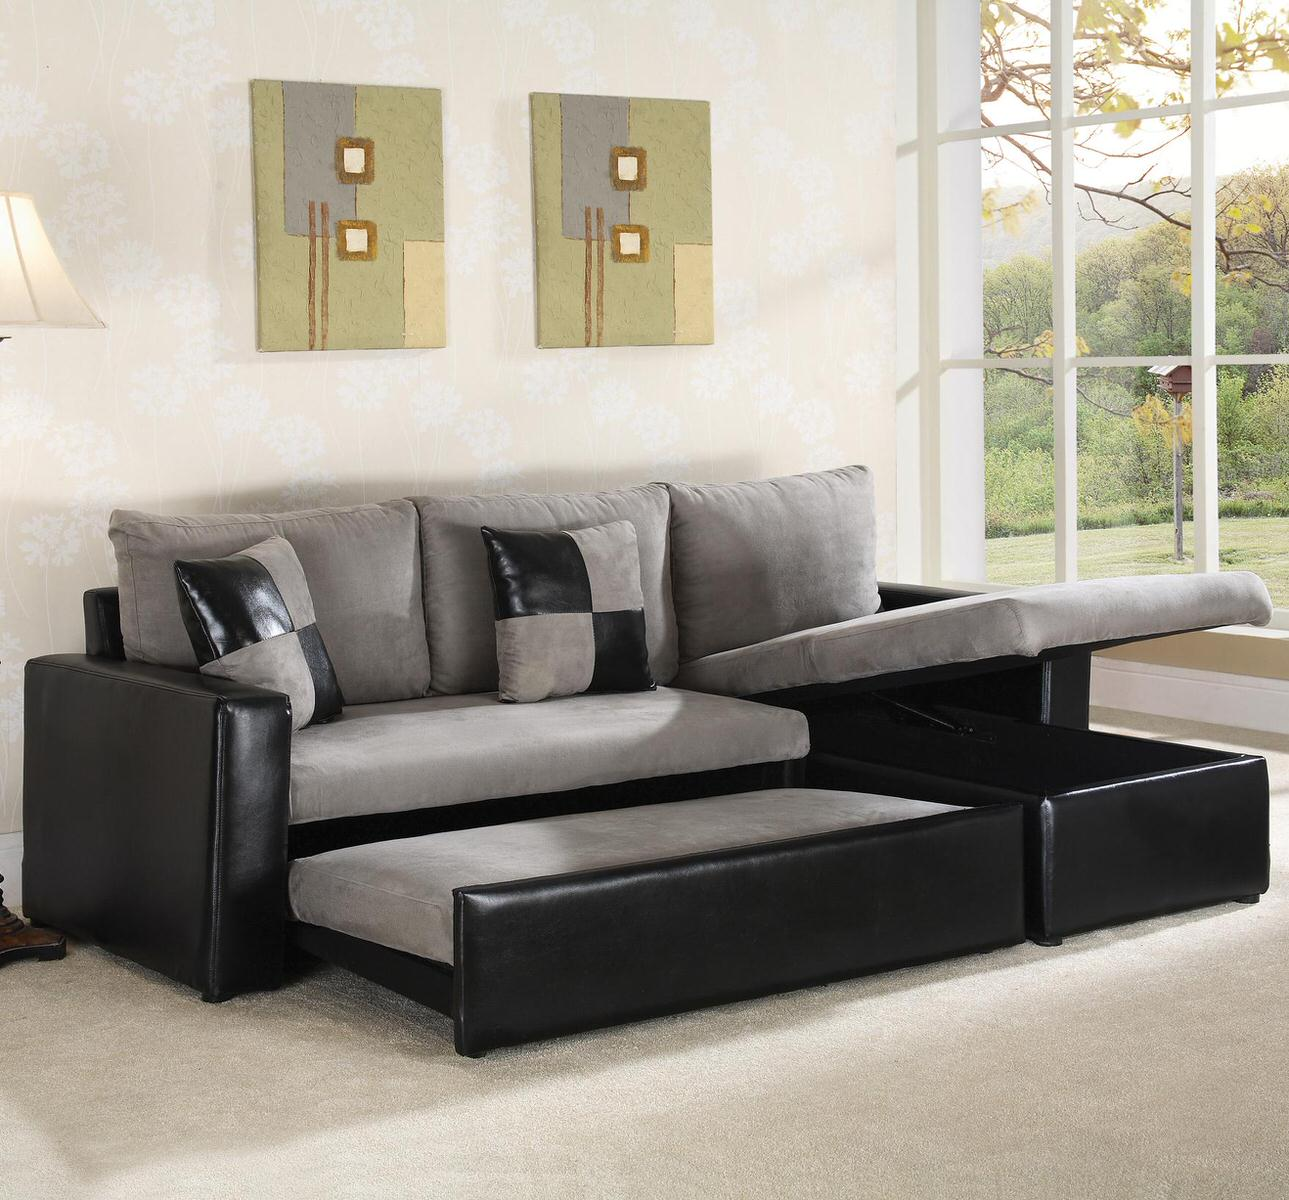 64008 Sectional Sofa Sleeper by World Imports